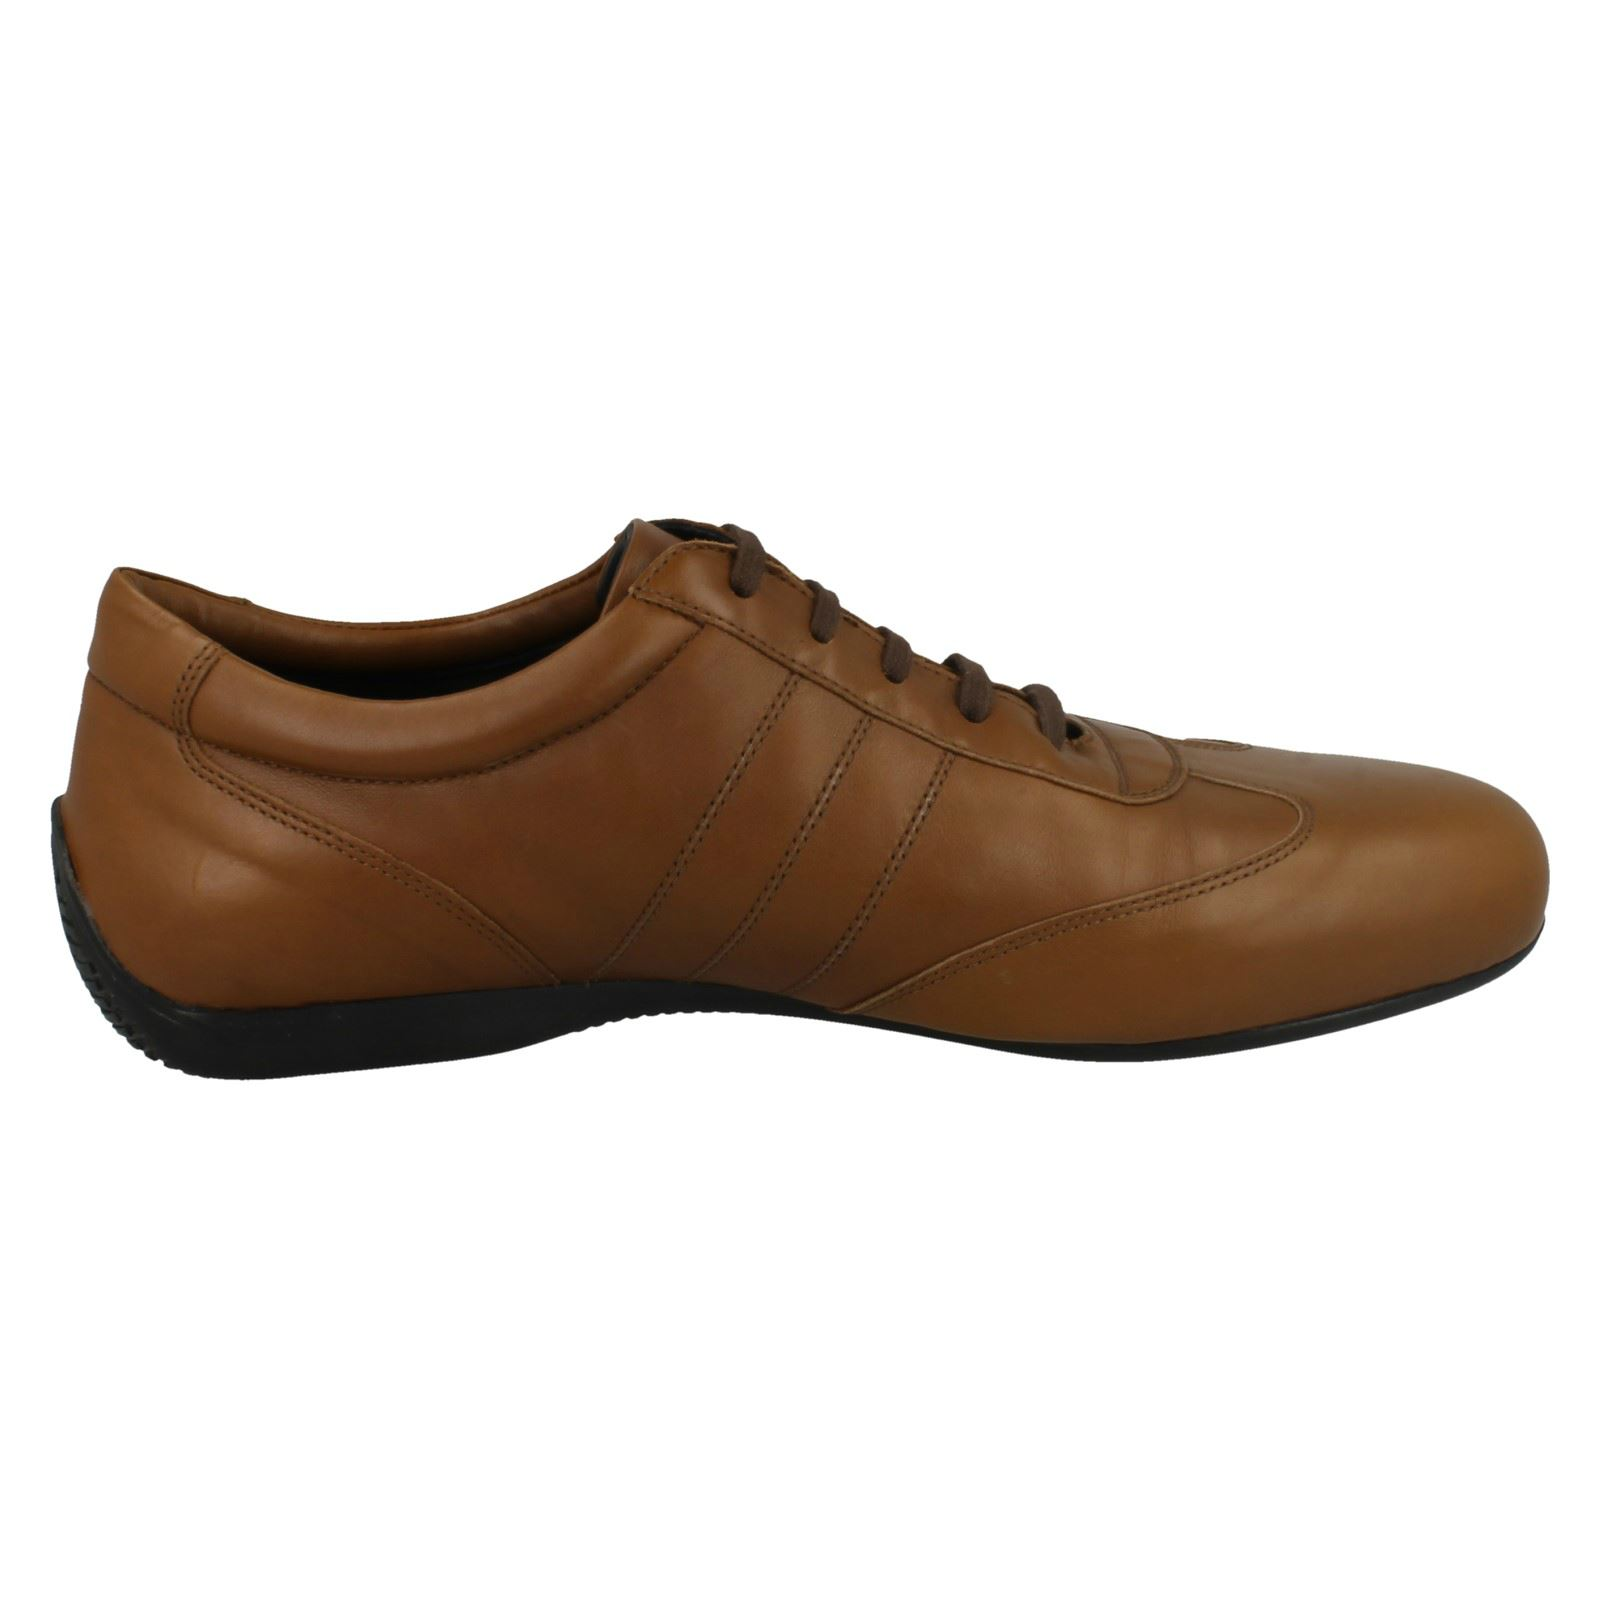 Uomo Joseph Cheaney Casual Lace-Up Schuhes Rossi a47585